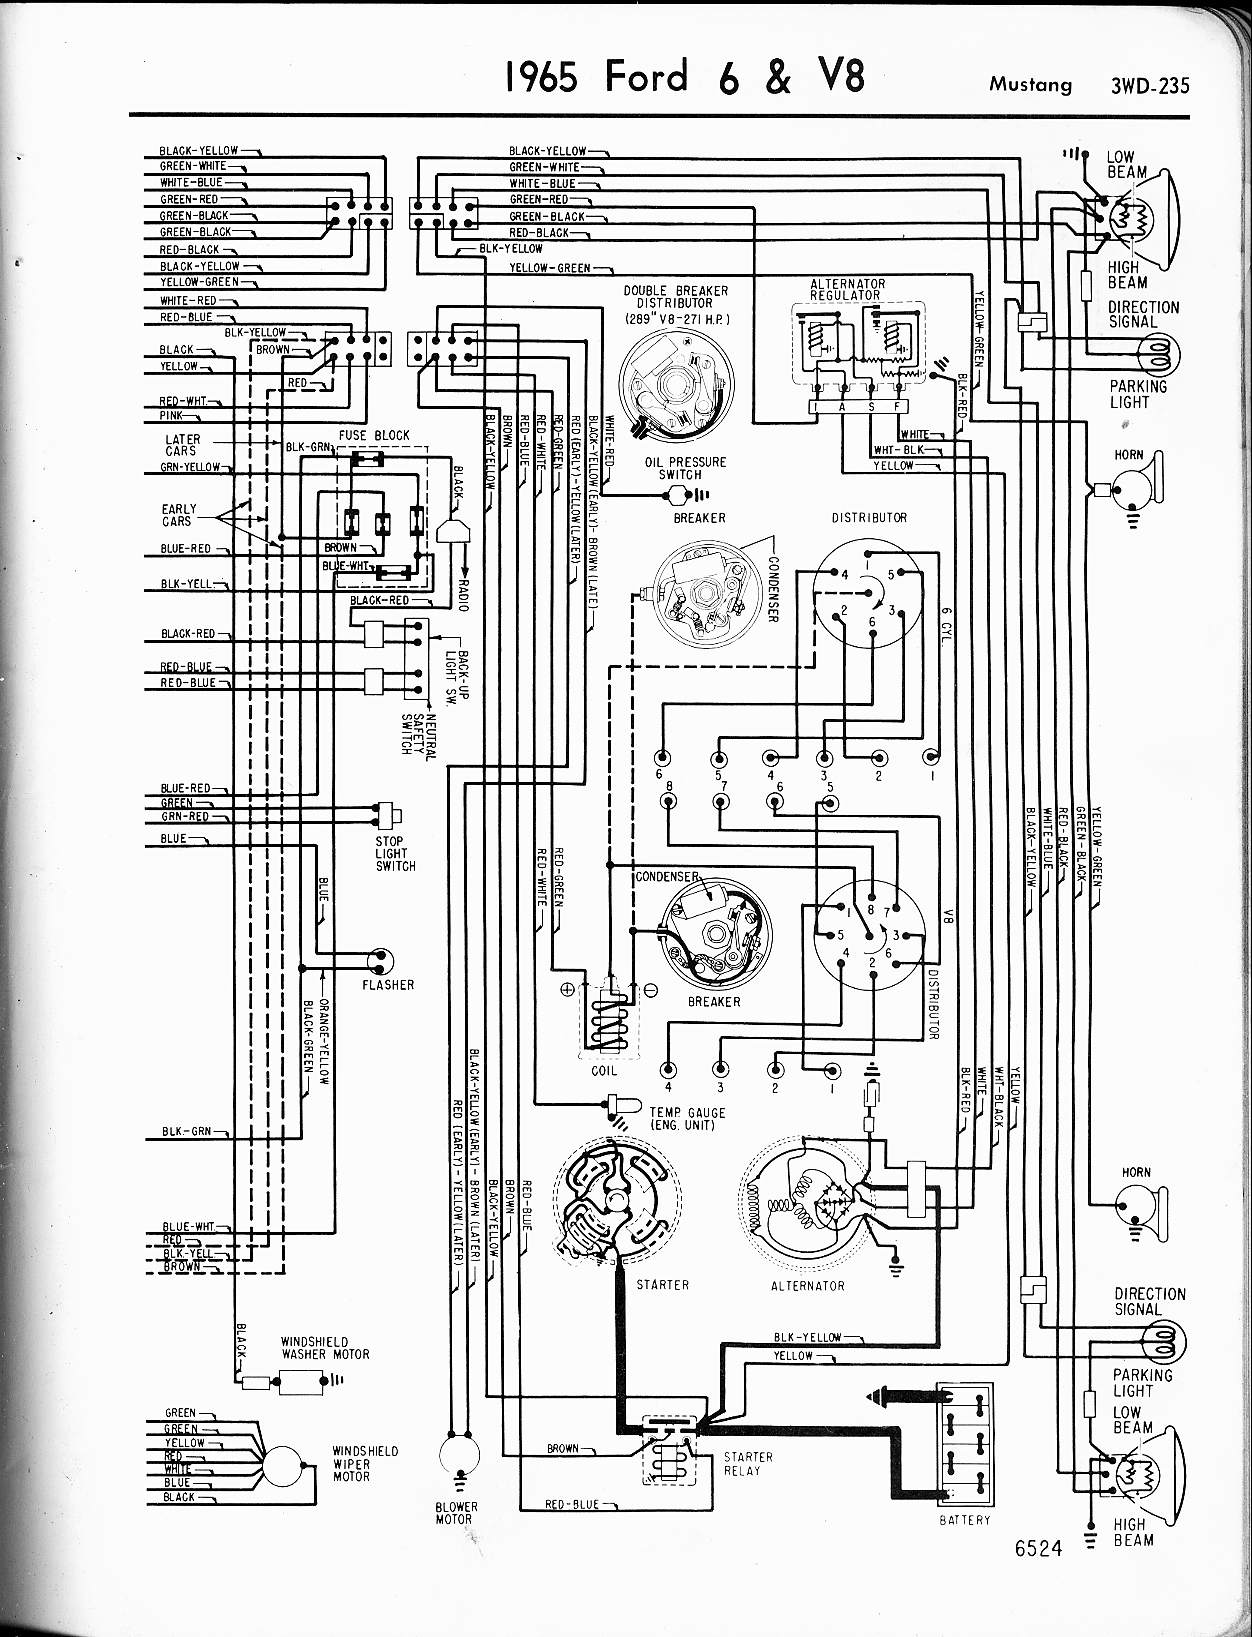 MWire5765 235 100 [ mustang horn wiring diagram ] 63 impala fuse box on 63 1965 mustang engine wiring harness at virtualis.co